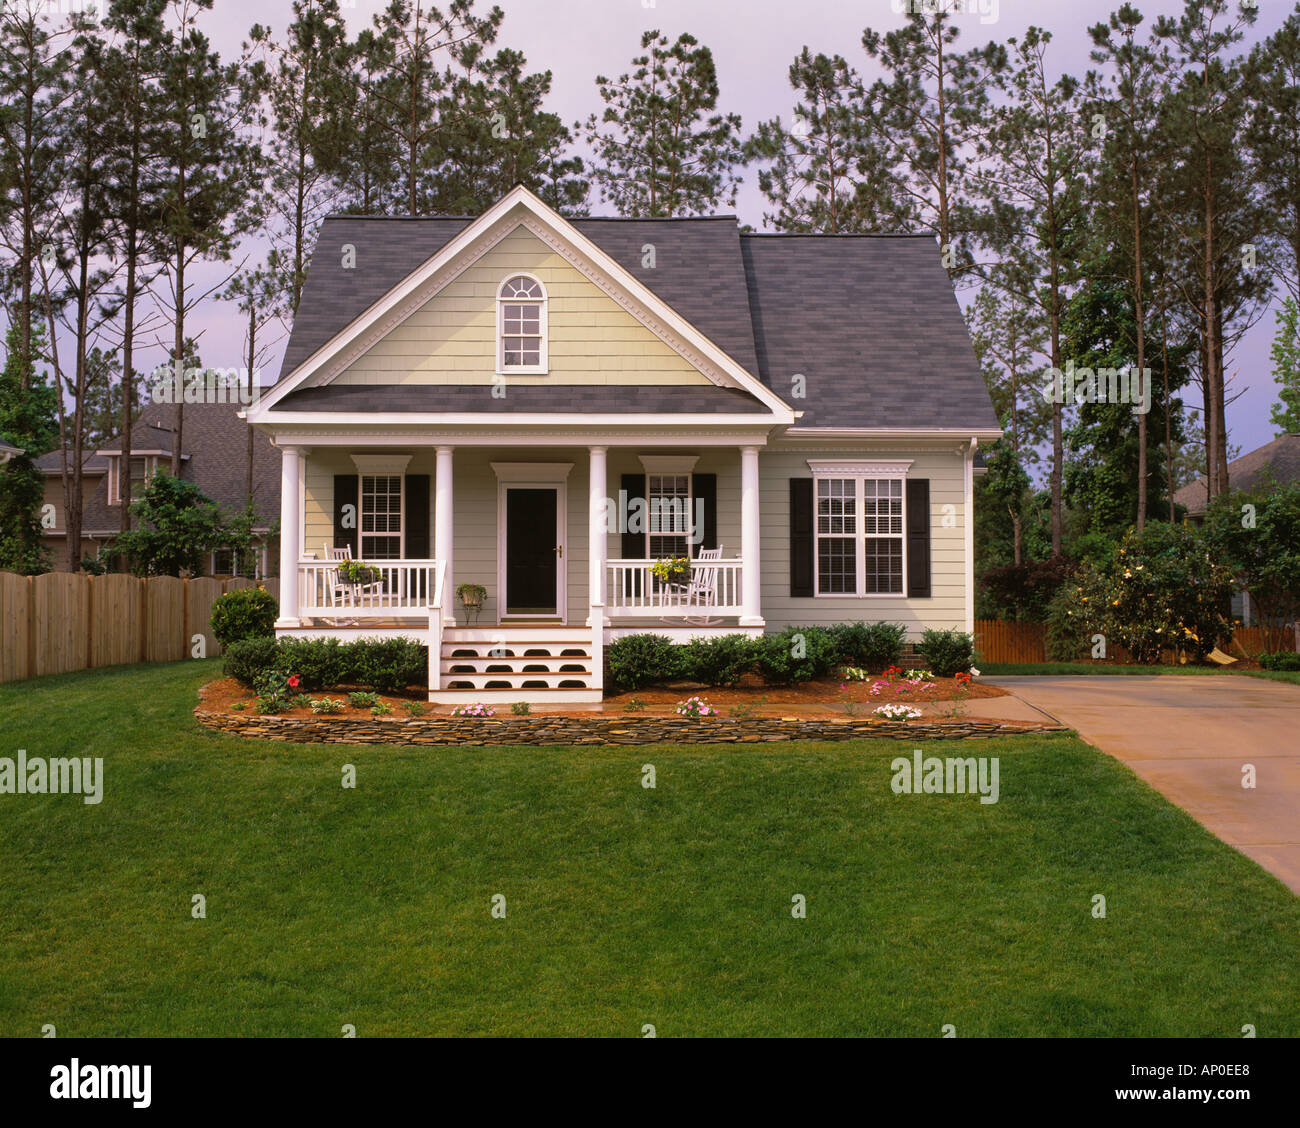 Small Tan House With Black Shutters White Trim And A Large